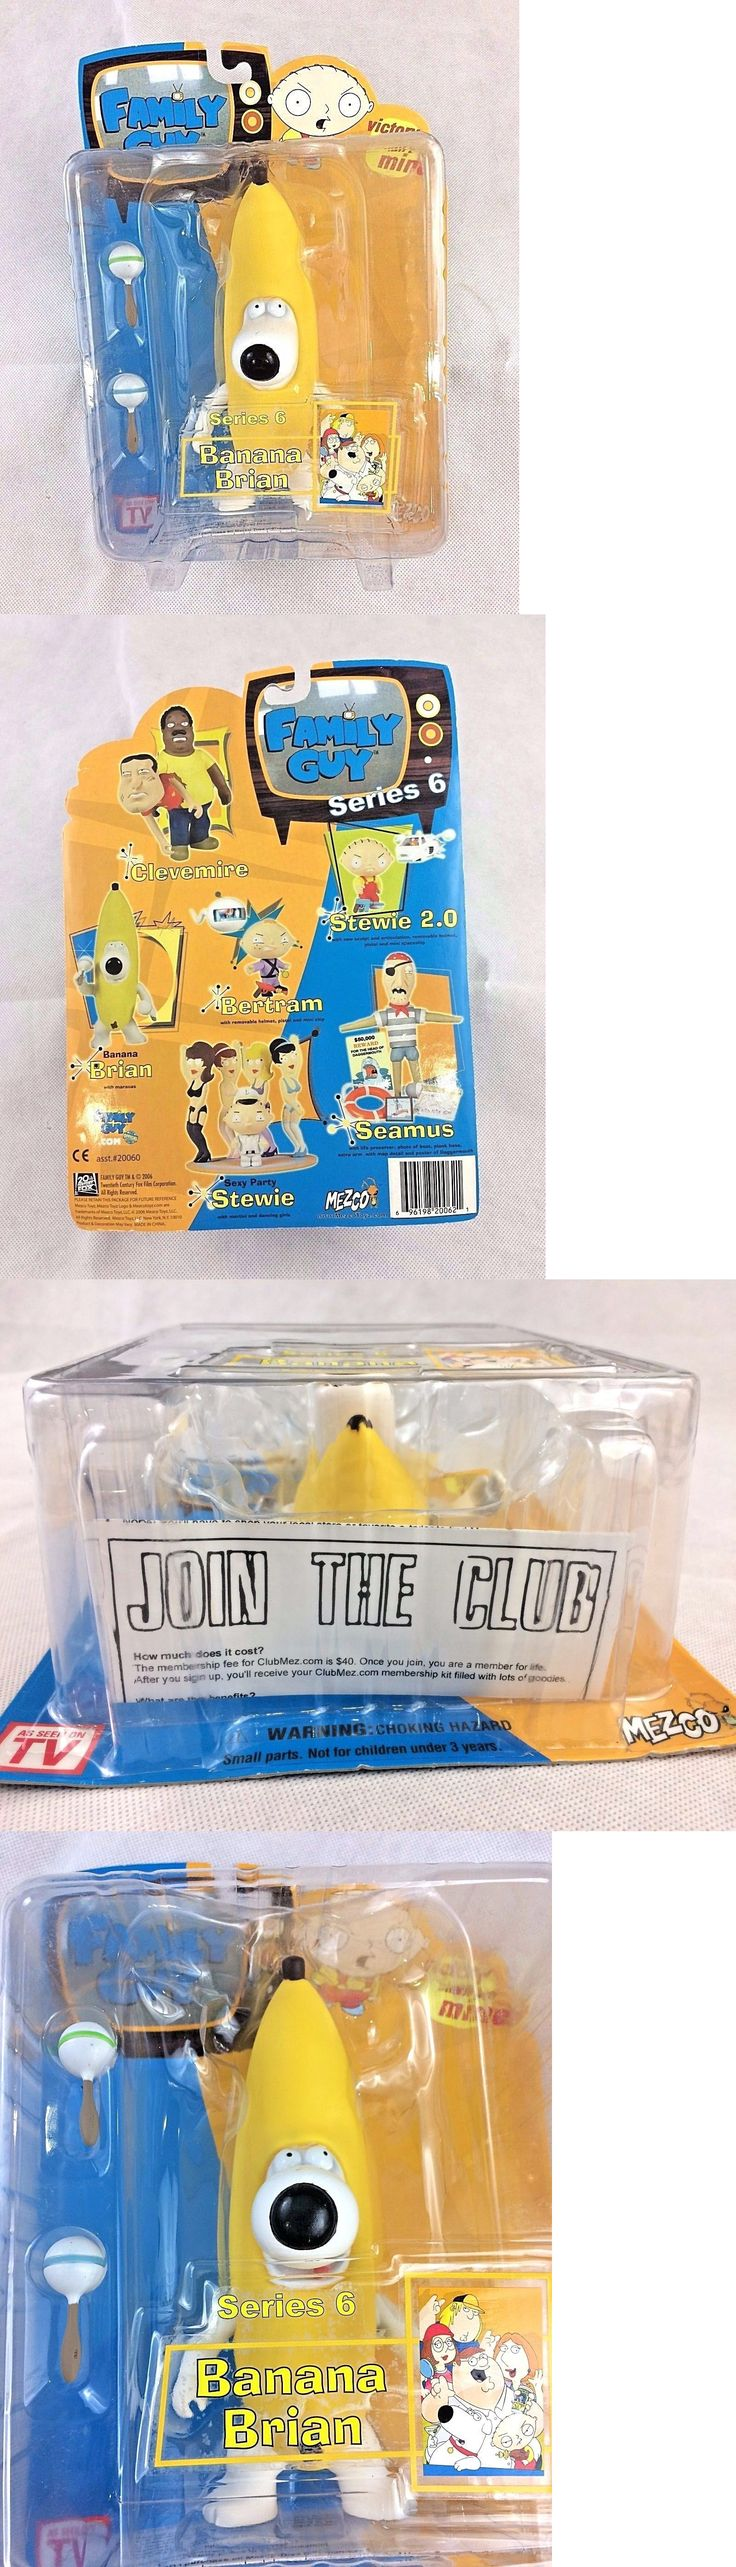 Family Guy 146056: Family Guy Mezco Series 6 Action Figure Banana Brian - New - Sealed In Box! -> BUY IT NOW ONLY: $44.99 on eBay!